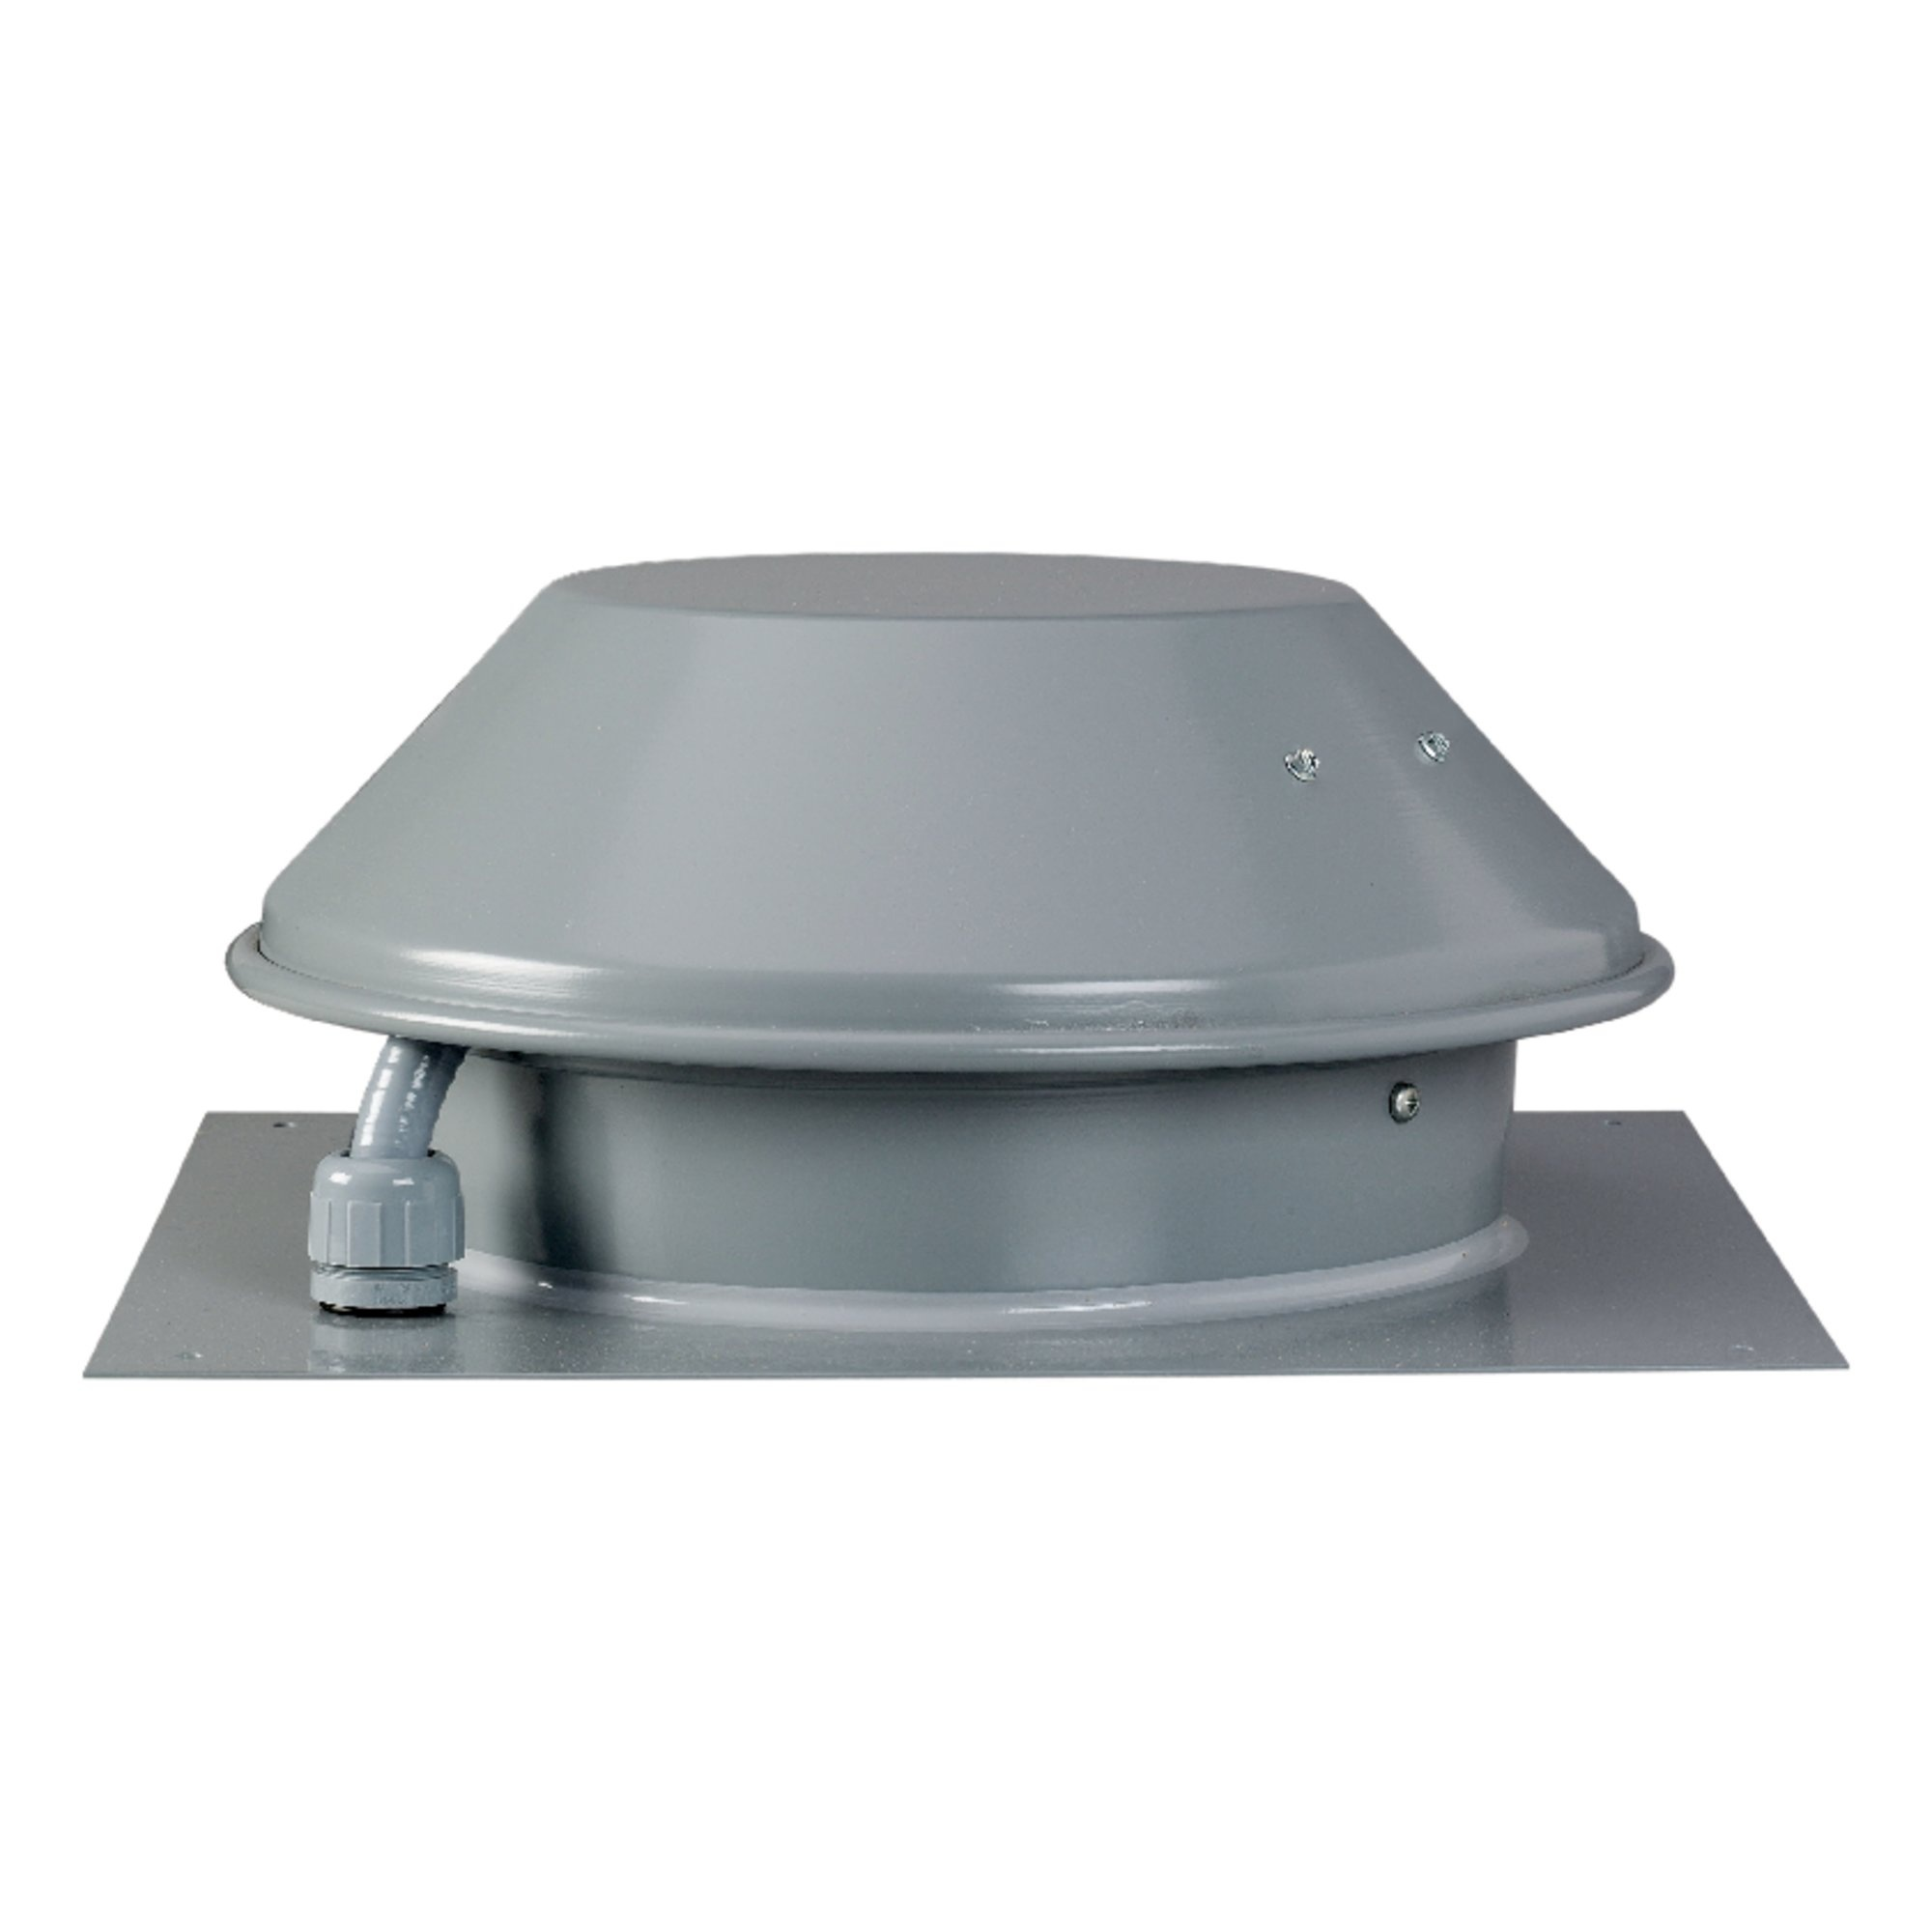 RE 54 Ext Roof/Wall Fan - Exhaust Fans - Fantech